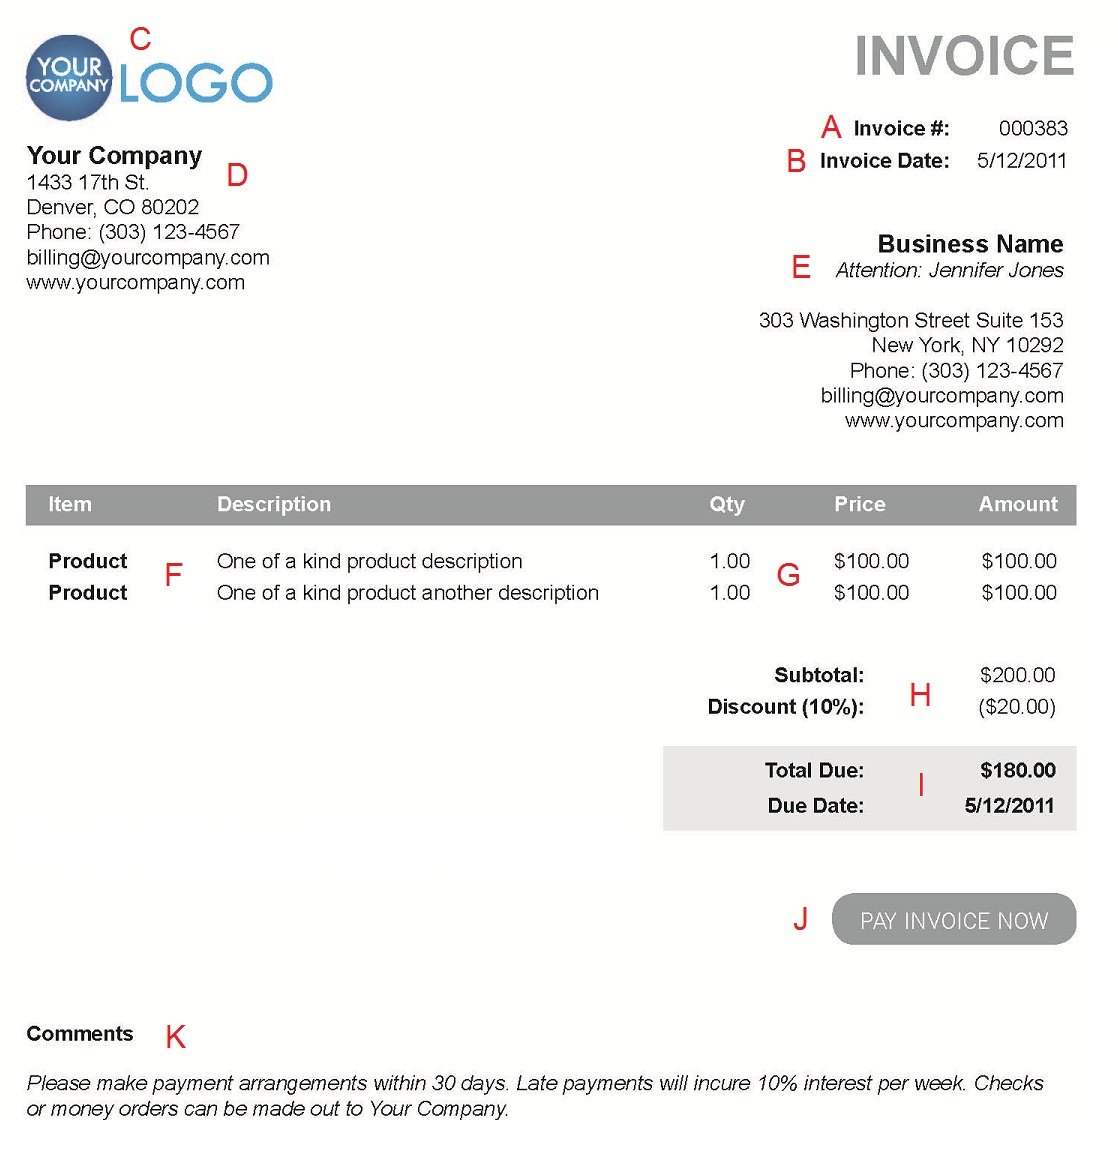 Imagerackus  Pleasing The  Different Sections Of An Electronic Payment Invoice With Luxury A  With Divine Advance Payment Invoice Sample Also Blank Invoice Template Printable In Addition Nissan Invoice And Tax Invoice Example As Well As Excise Invoice Additionally Invoicing Factoring From Paysimplecom With Imagerackus  Luxury The  Different Sections Of An Electronic Payment Invoice With Divine A  And Pleasing Advance Payment Invoice Sample Also Blank Invoice Template Printable In Addition Nissan Invoice From Paysimplecom